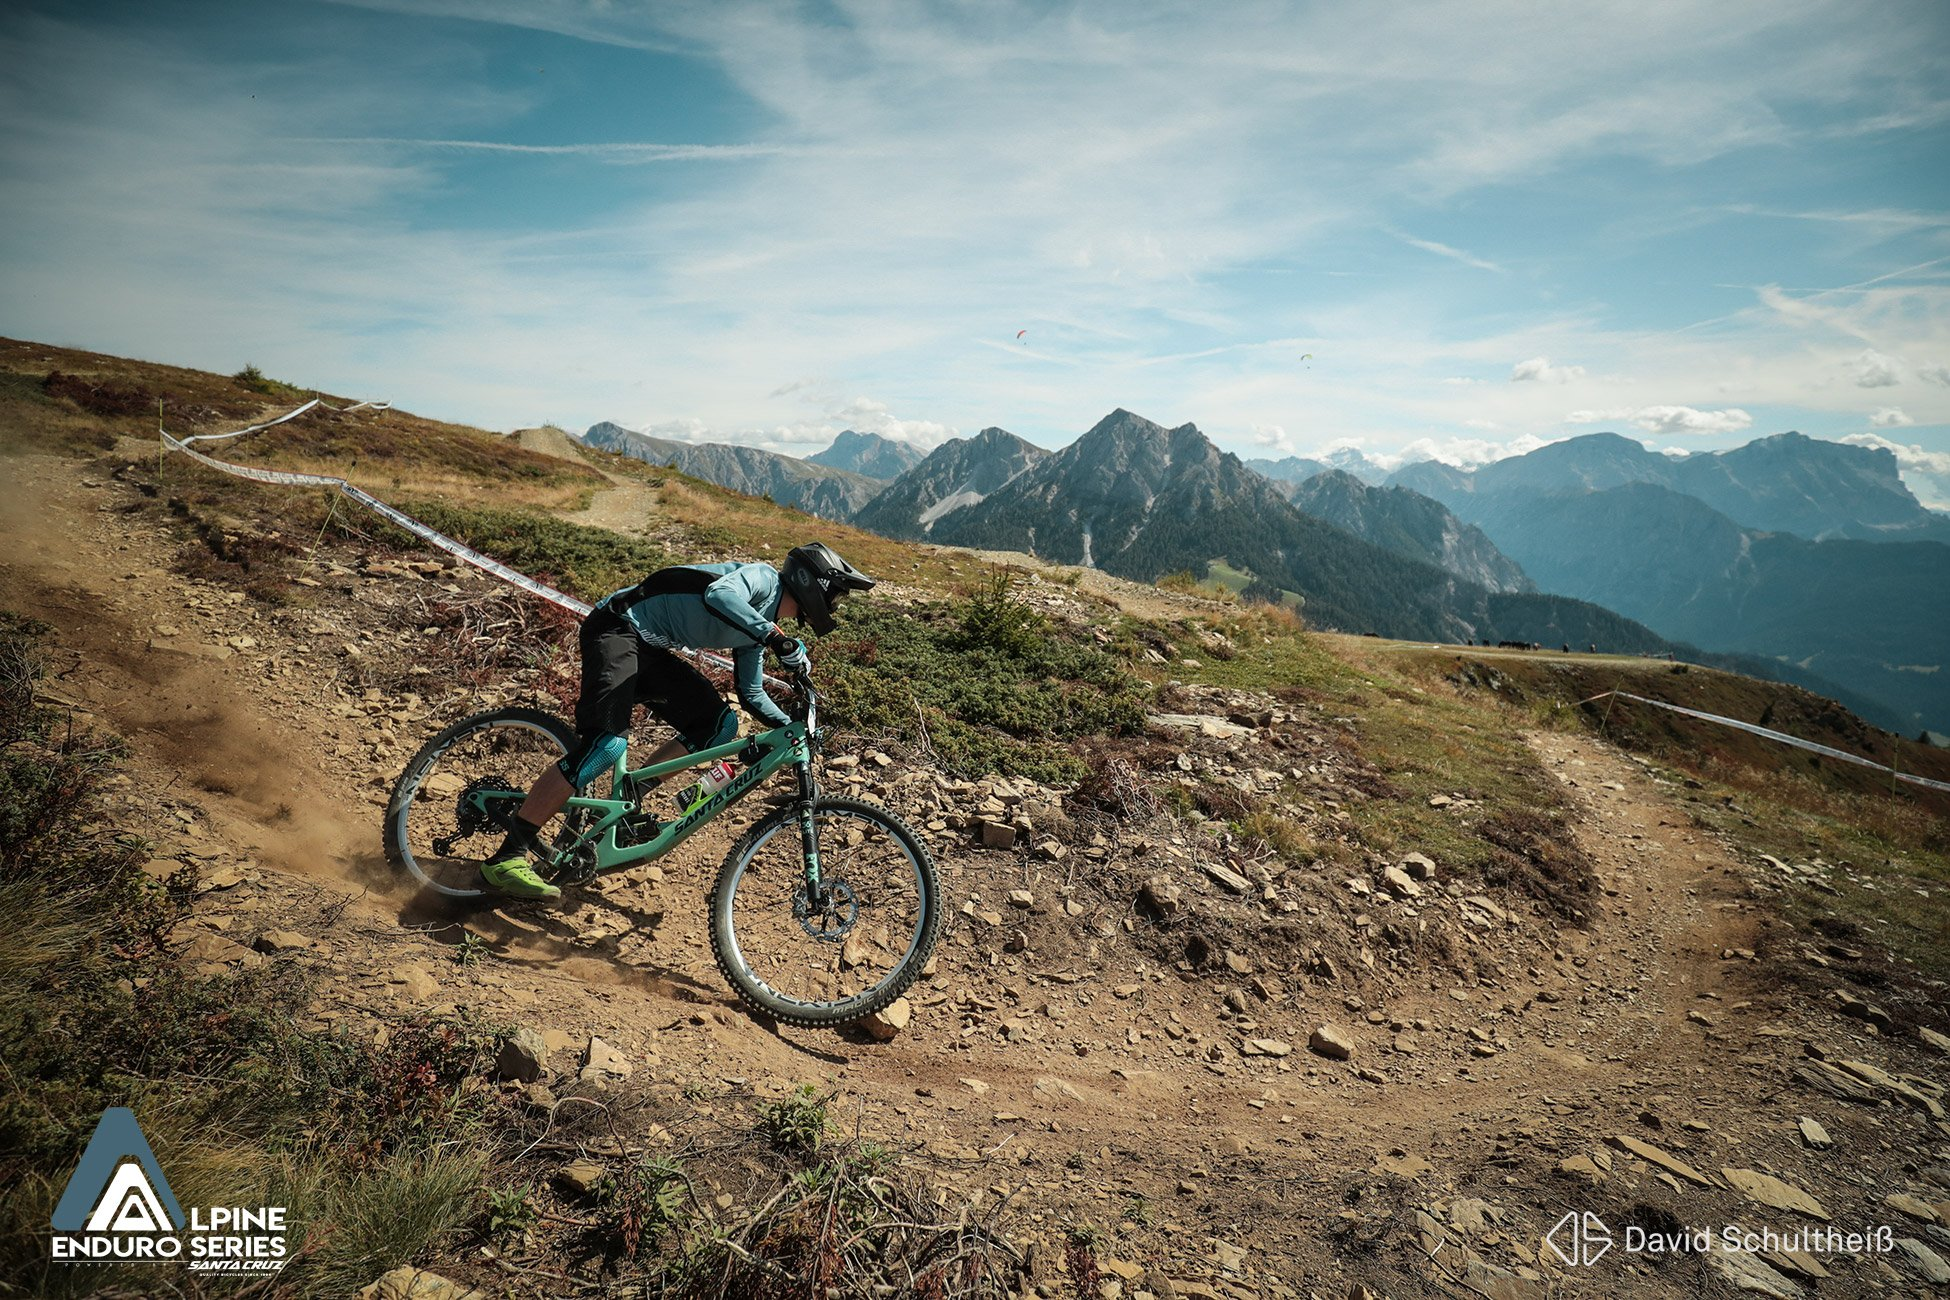 Alpine Enduro Series